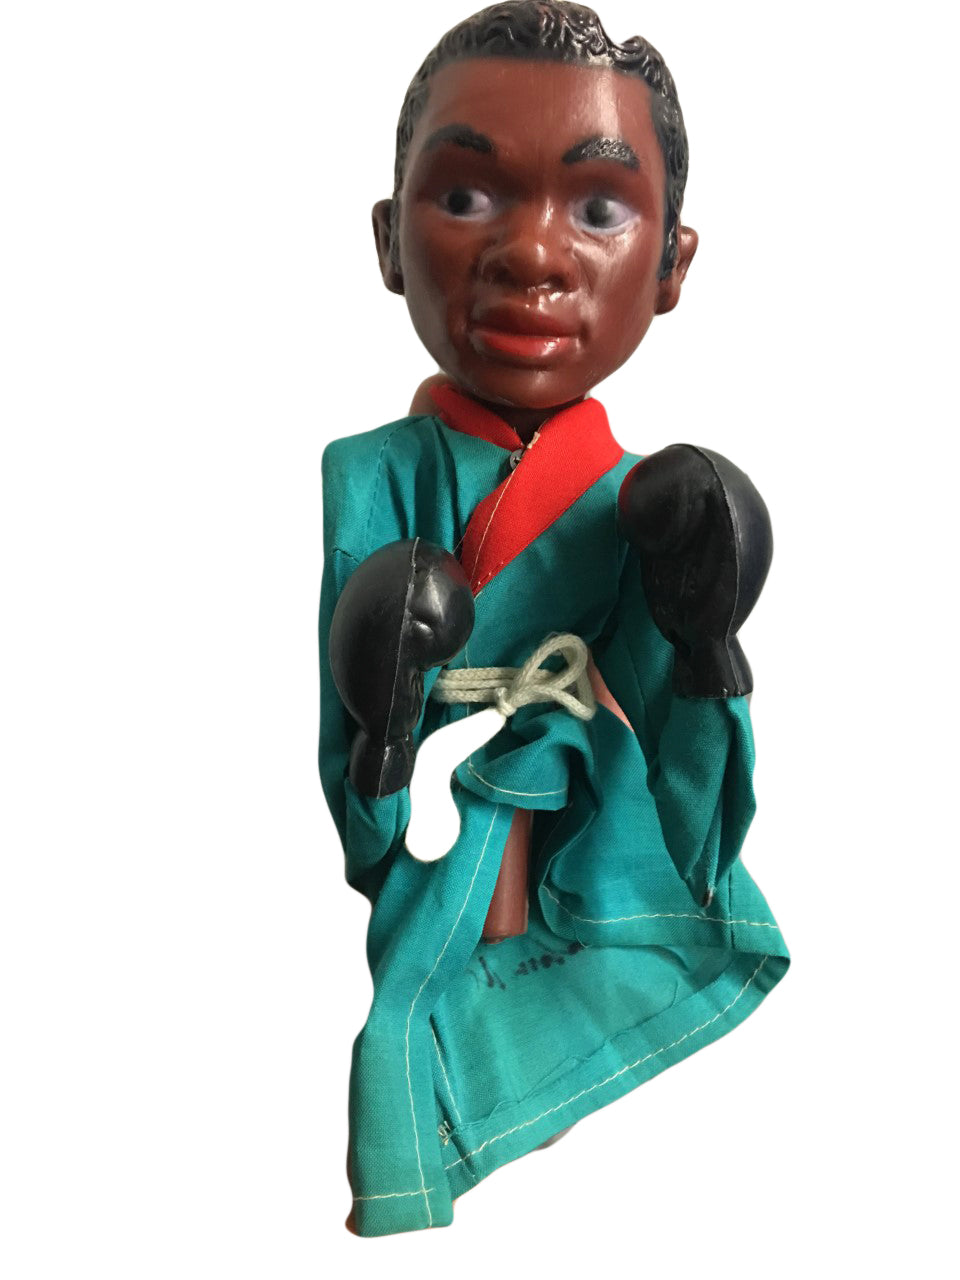 Muhammad Ali-Vintage Boxing Hand Puppet-Scarce Collectible - Cassius Clay